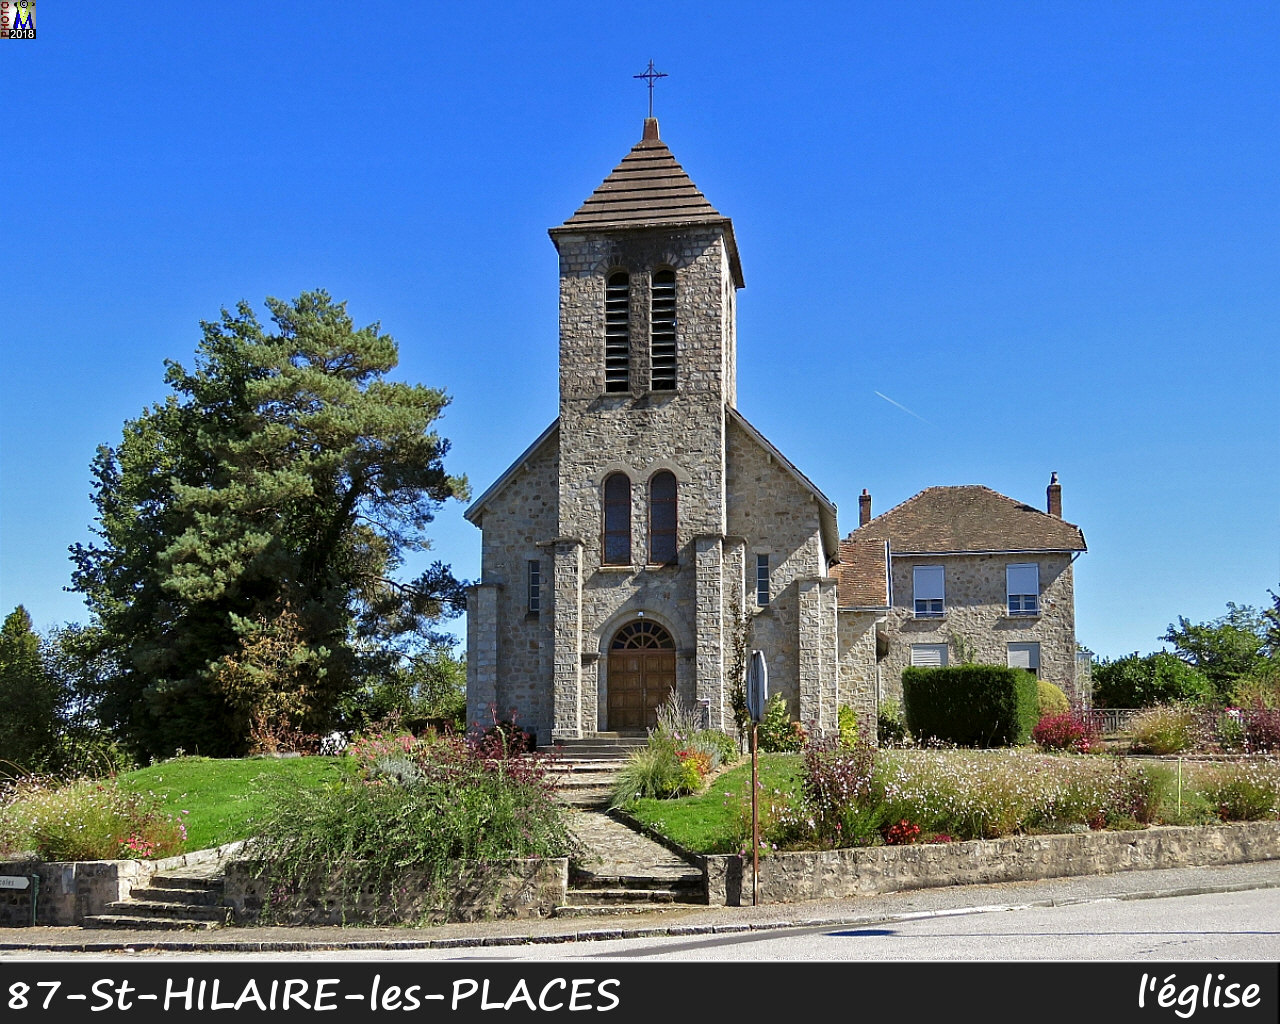 87StHILAIRE-PLACES_eglise_1000.jpg